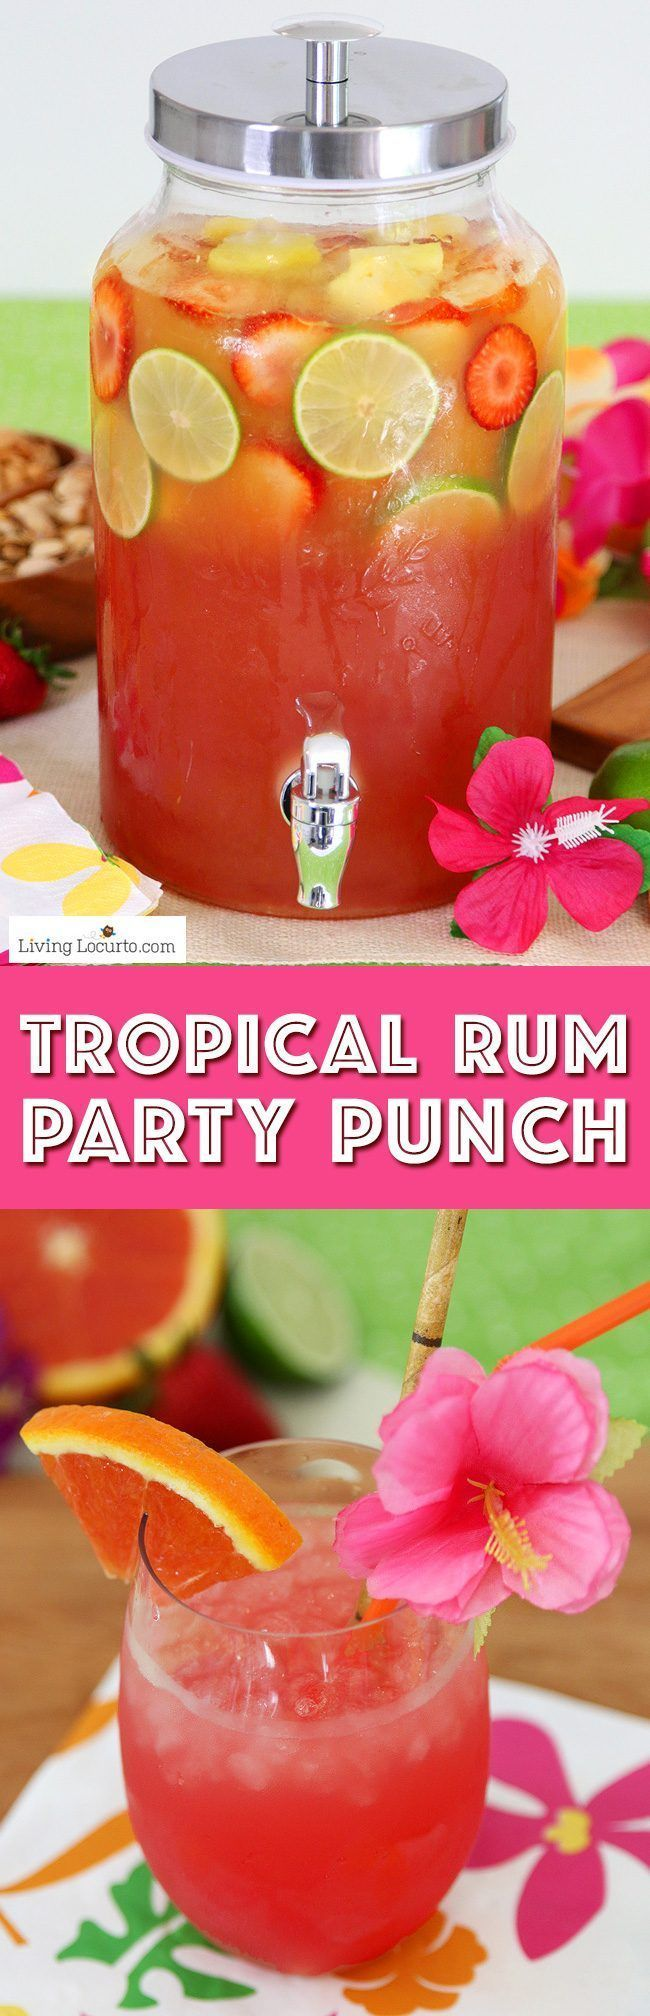 Summer Luau Party Ideas! Tropical rum punch is a delicious summer cocktail recipe for a luau party or to sip by the pool! A mix of juice and coconut rum for a pretty layered drink. (Pour Drink Coconut Rum)